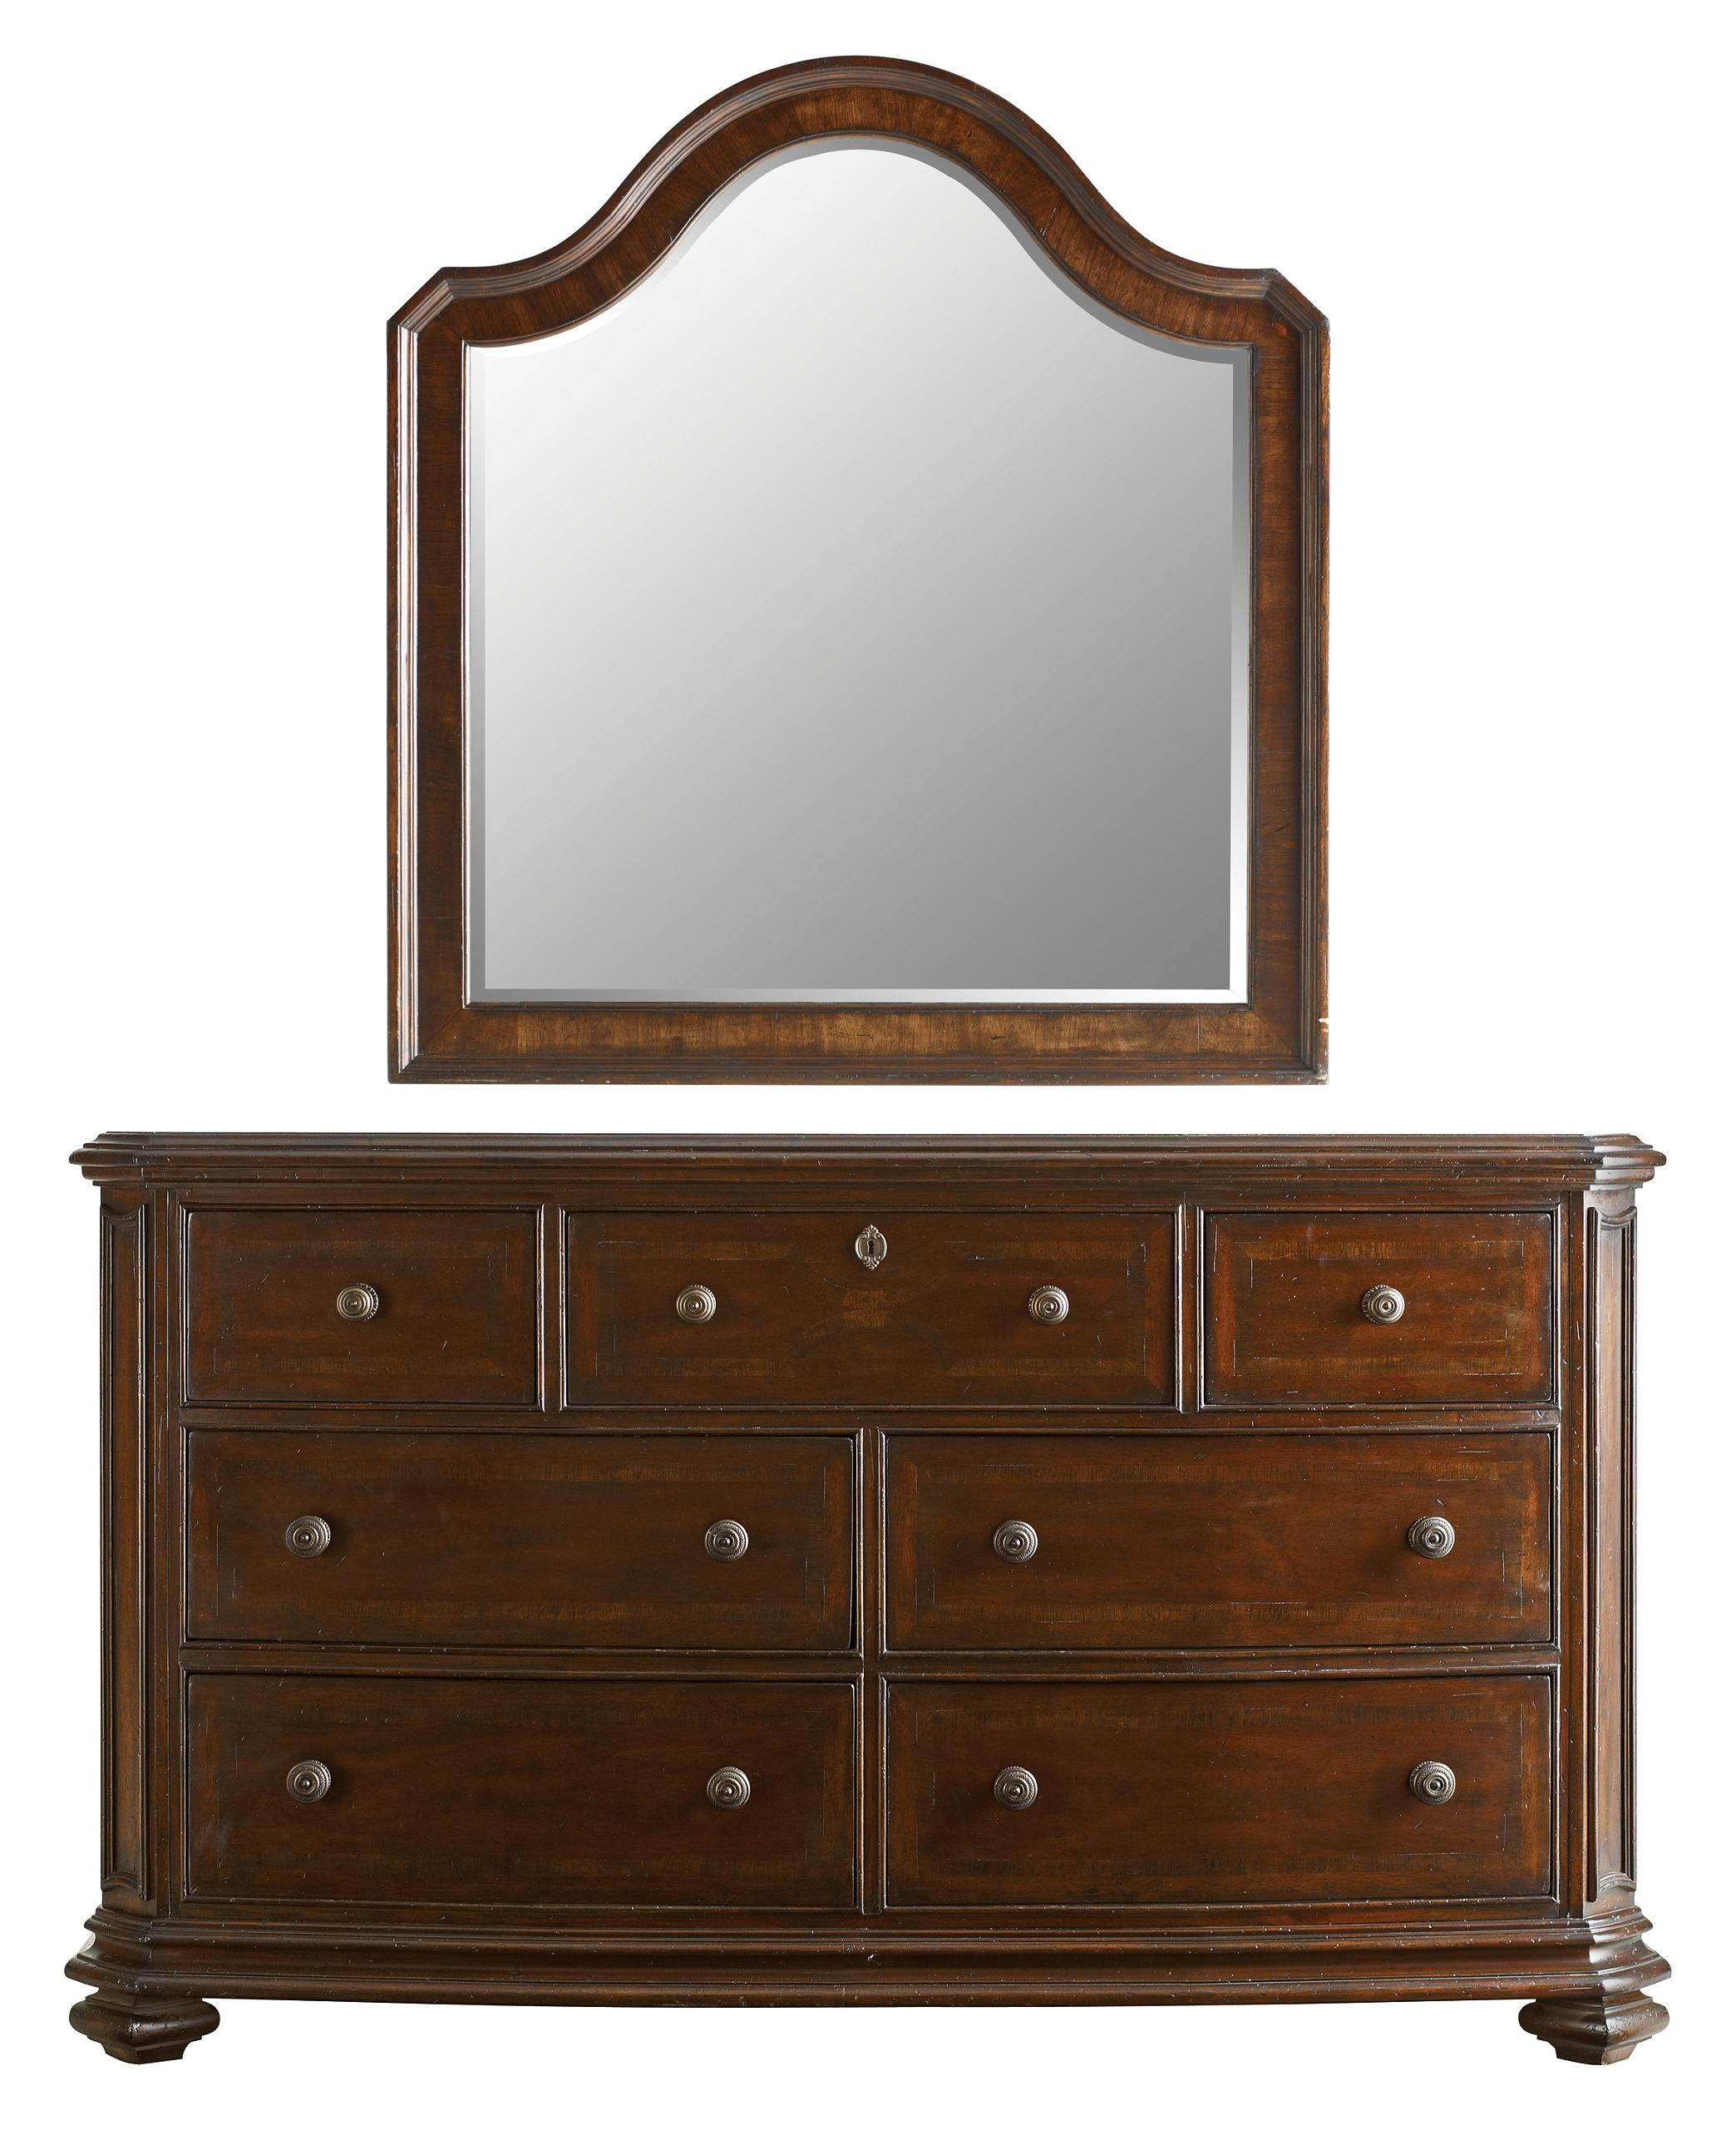 Stanley Furniture The Classic Portfolio Continental Triple Dresser & Landscape Mirror - Item Number: 128-13-05+30